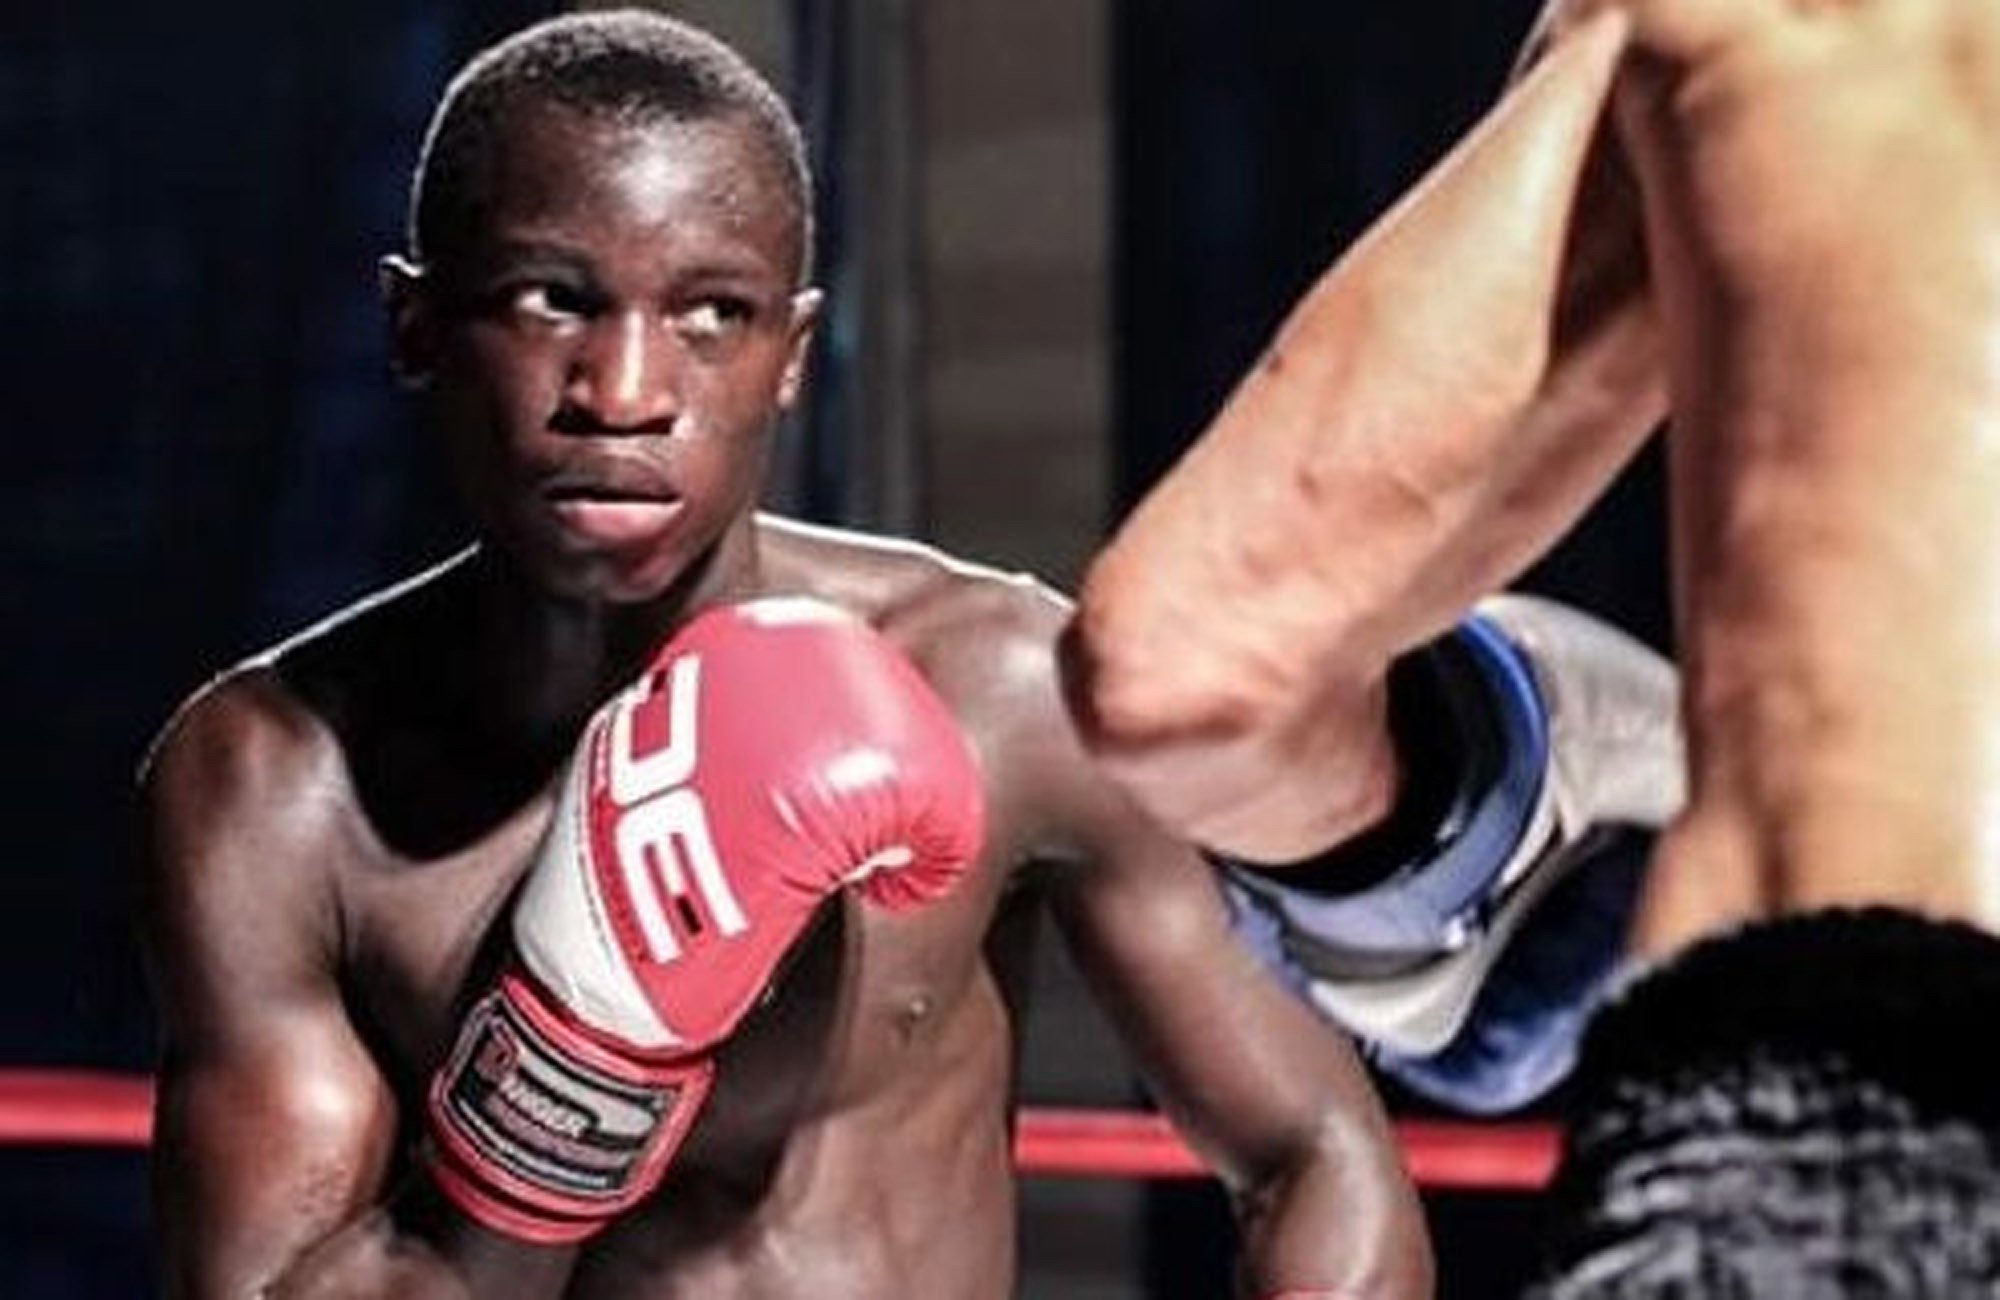 Undated Metropolitan Police handout photo of Wilham Mendes, 25, a keen boxer who has been named as the victim of a fatal stabbing in Tottenham, north London, on December 22. PRESS ASSOCIATION Photo. Issue date: Monday December 24, 2018. See PA story POLICE Haringey. Photo credit should read: Metropolitan Police/PA Wire NOTE TO EDITORS: This handout photo may only be used in for editorial reporting purposes for the contemporaneous illustration of events, things or the people in the image or facts mentioned in the caption. Reuse of the picture may require further permission from the copyright holder.